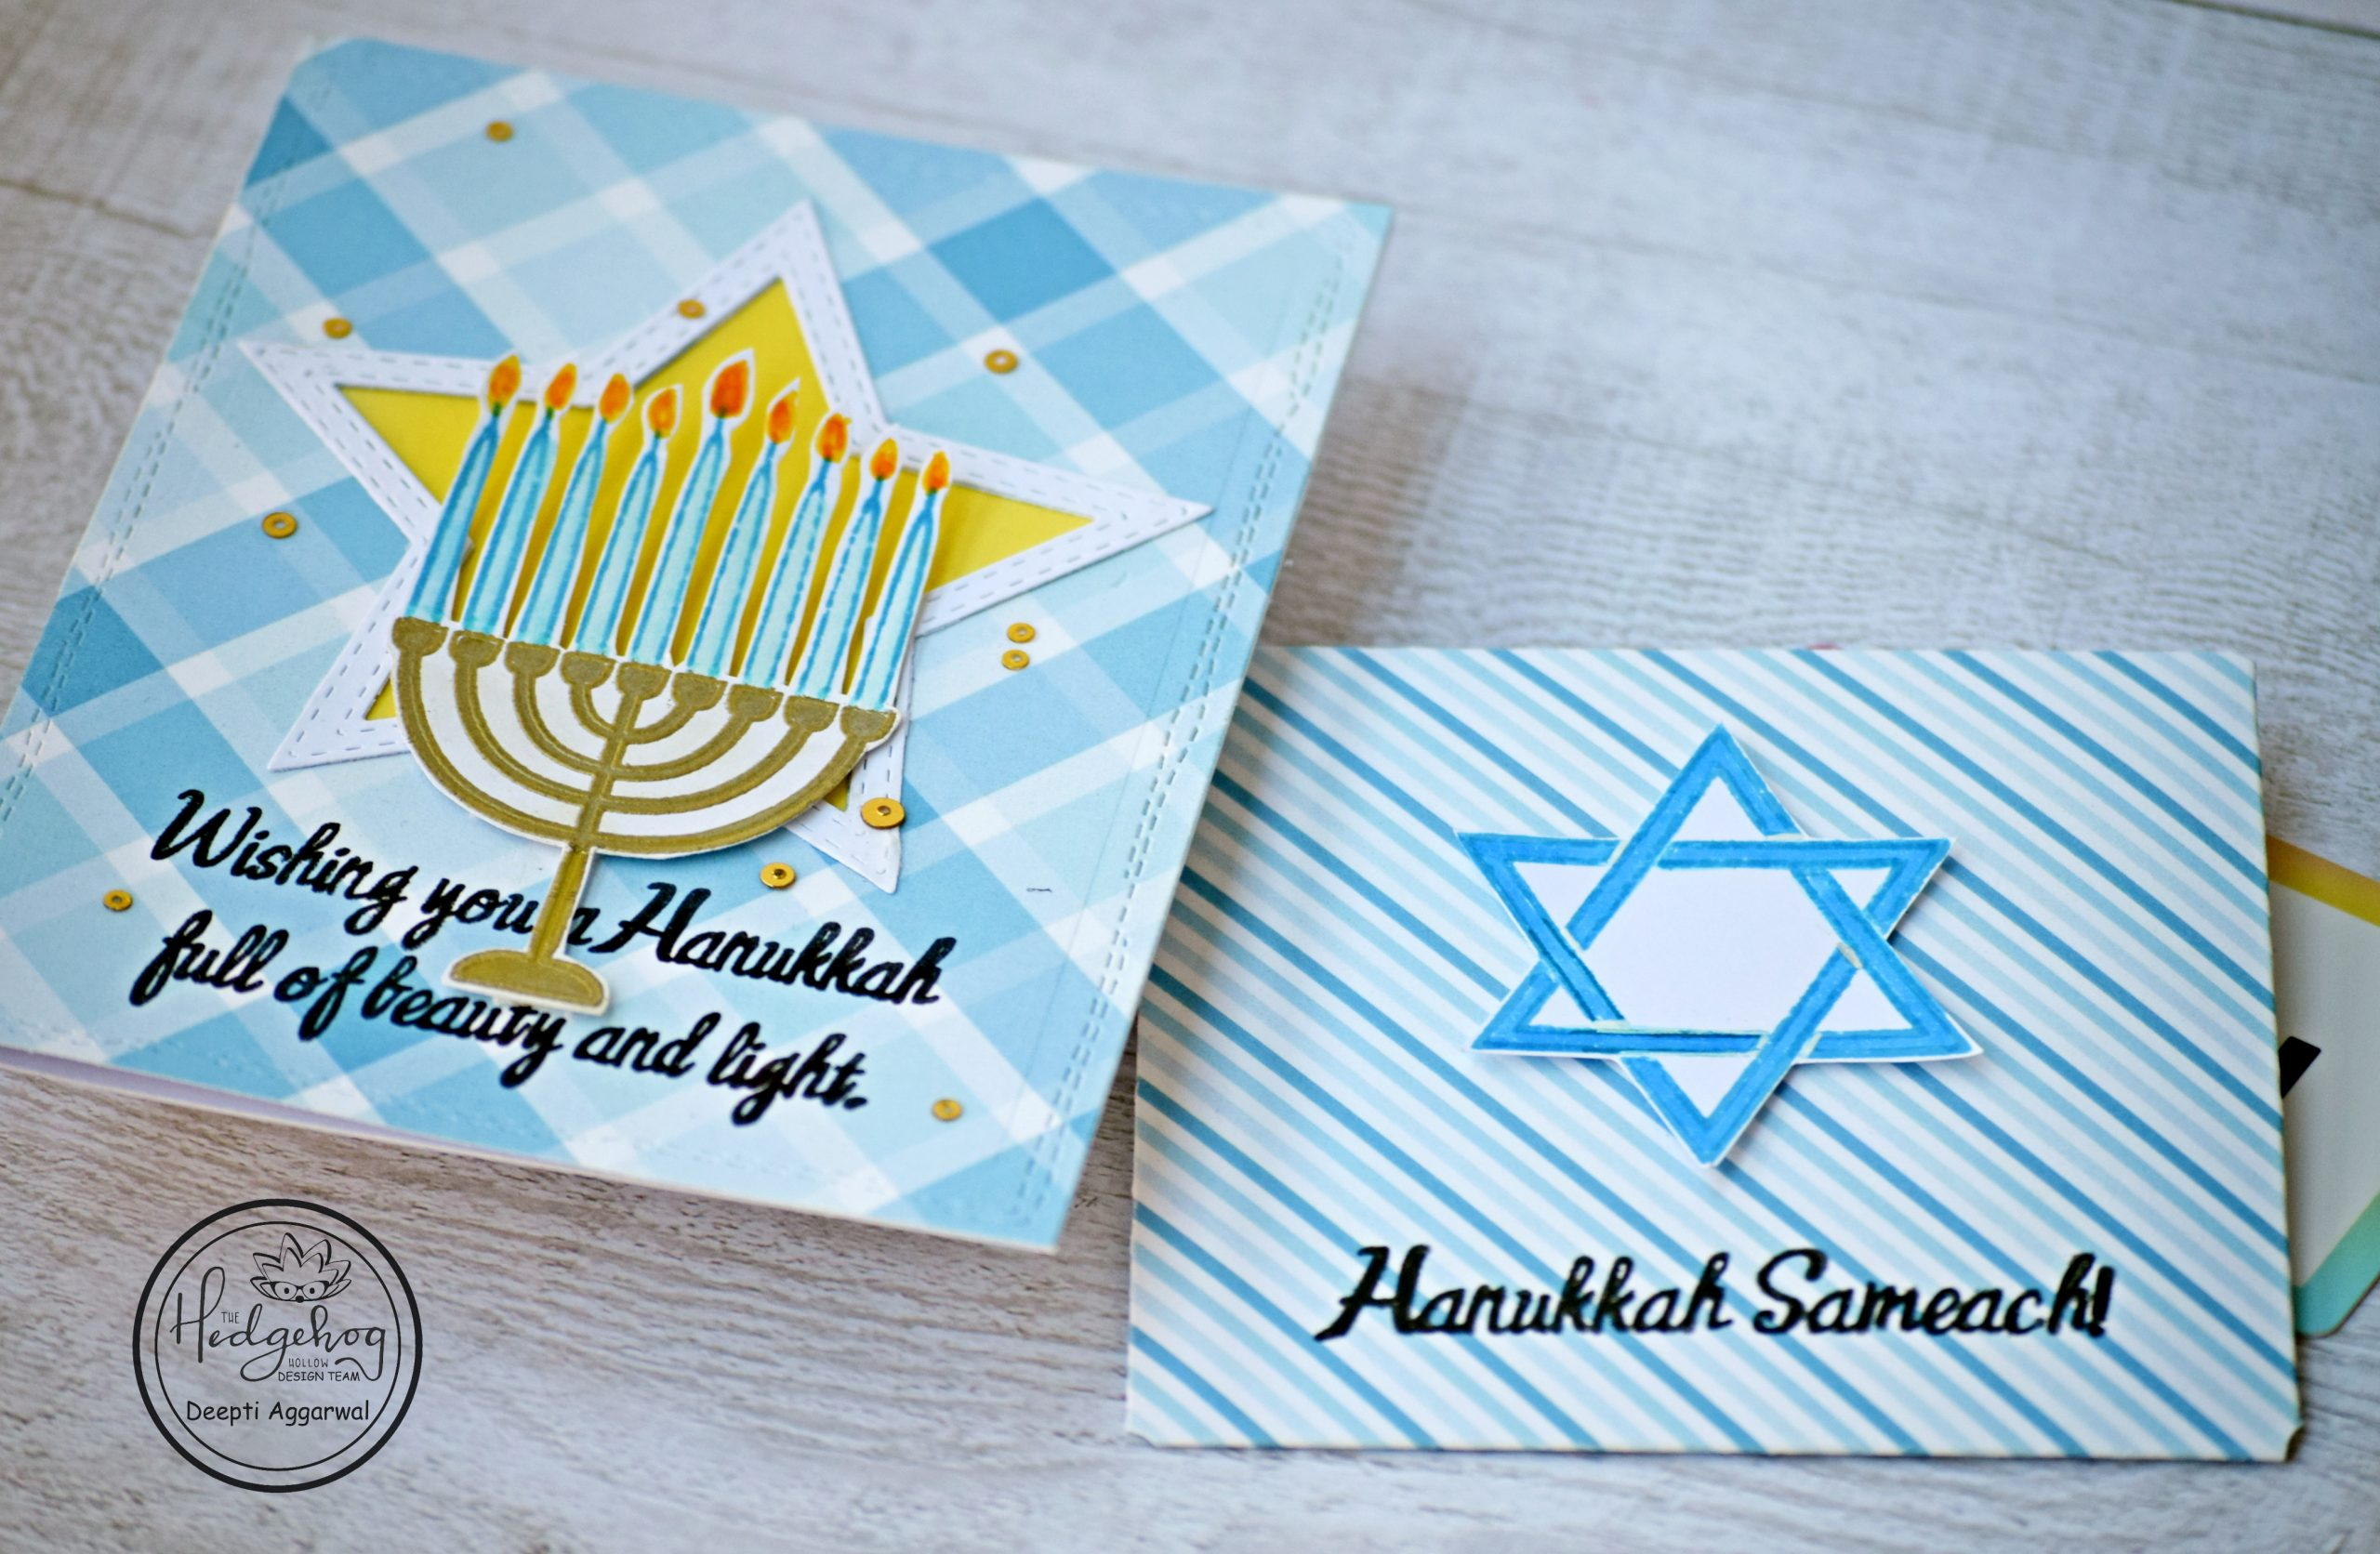 Hanukkah Wishes with matching Gift Card holder